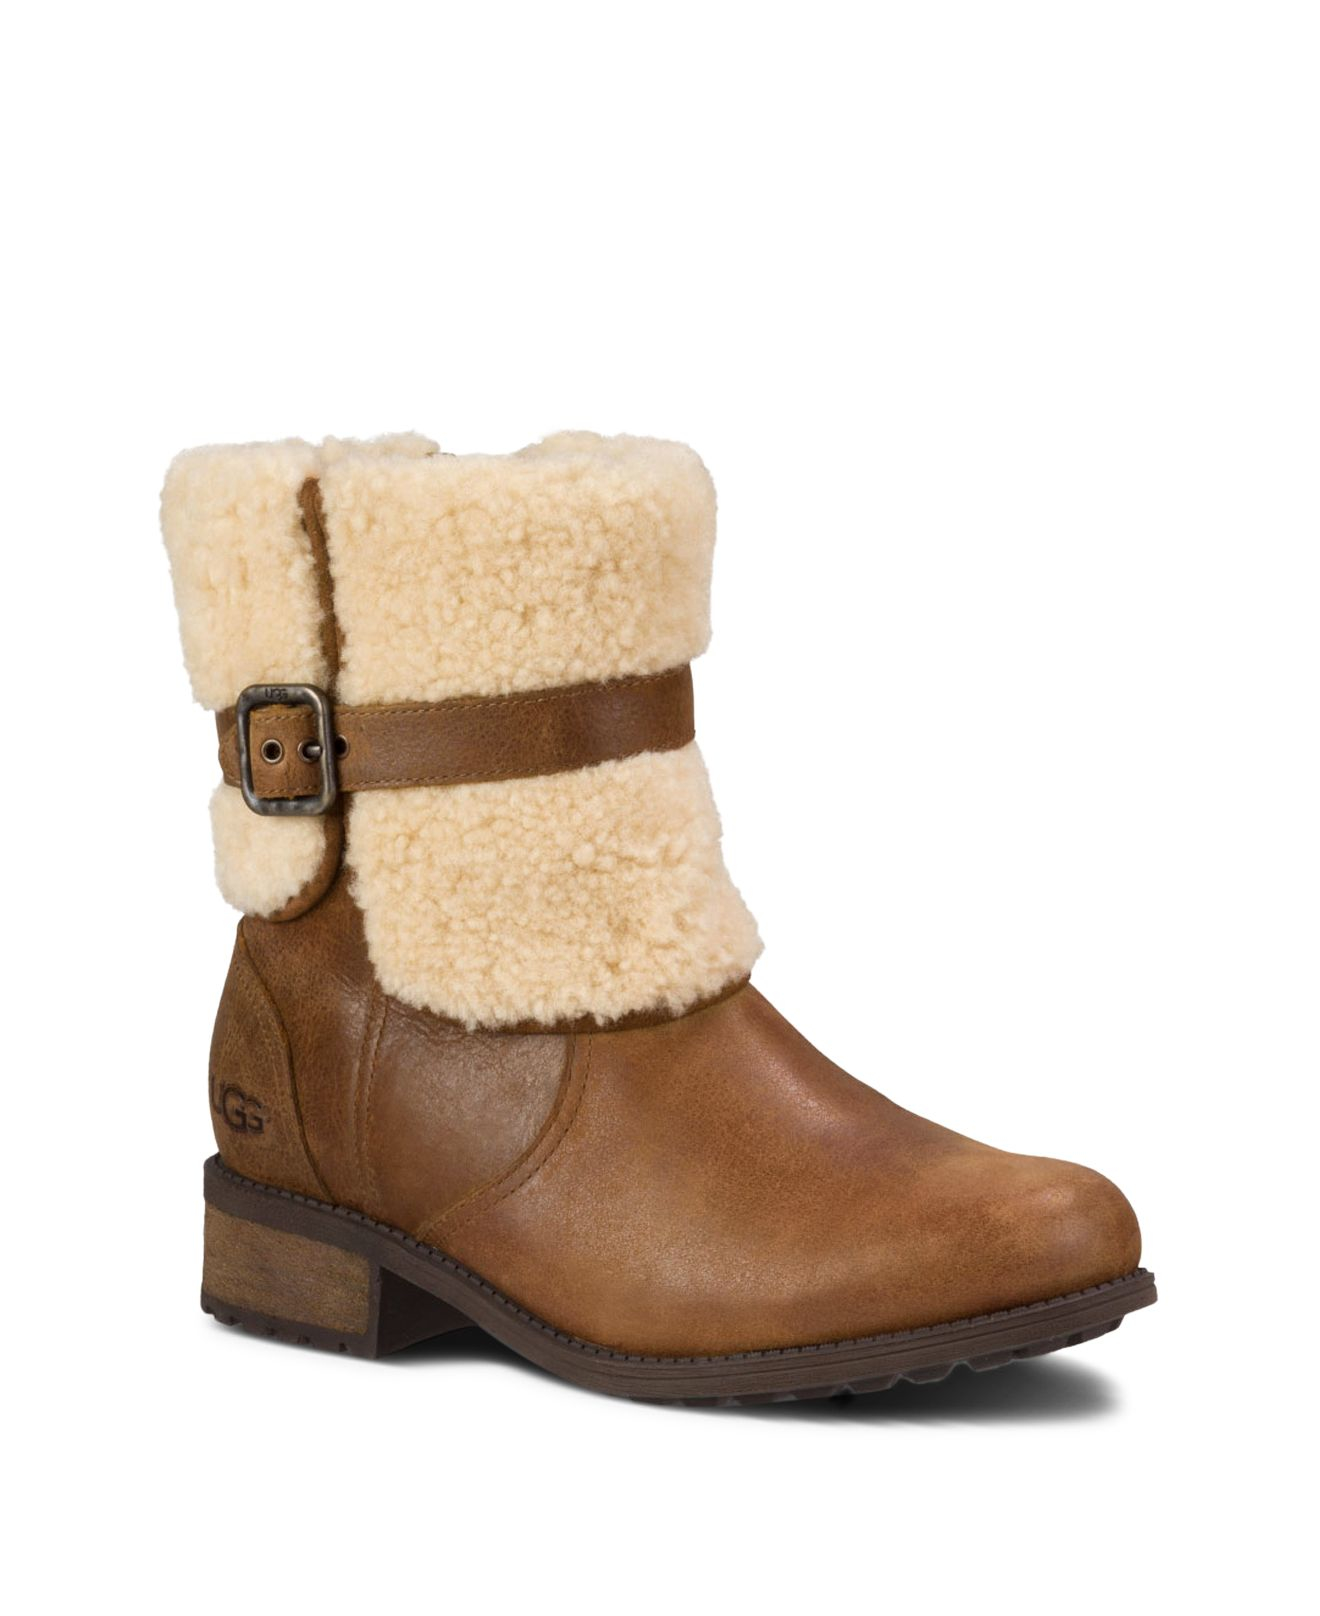 how to clean uggs with ugg cleaner